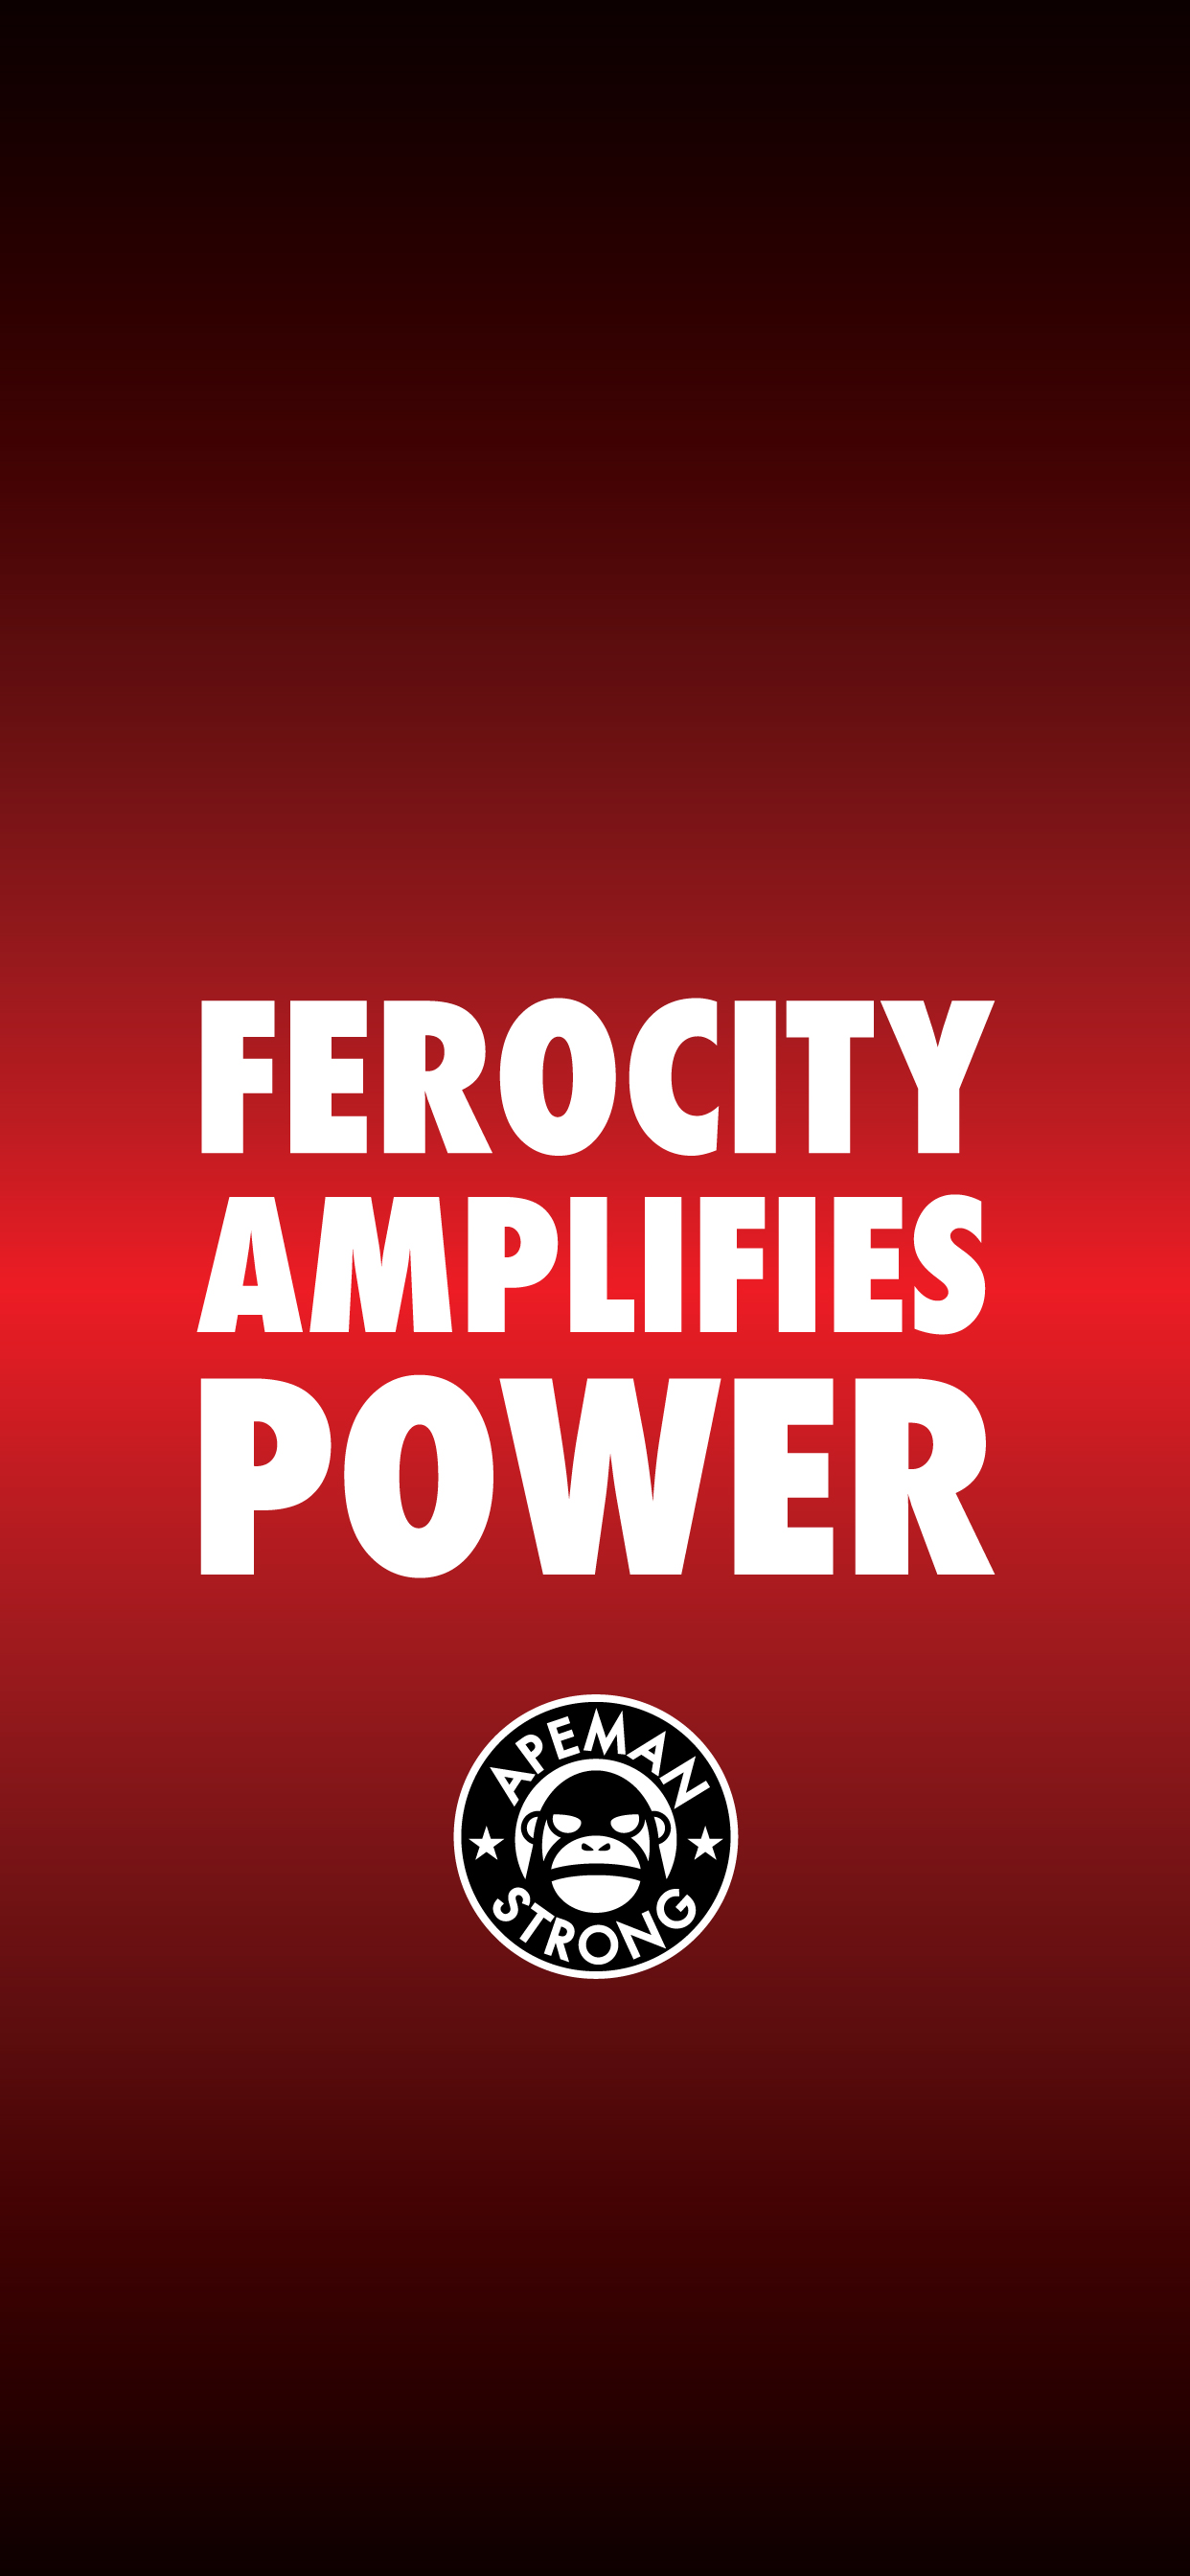 FEROCITY-AMPLIFIES-POWER.jpg